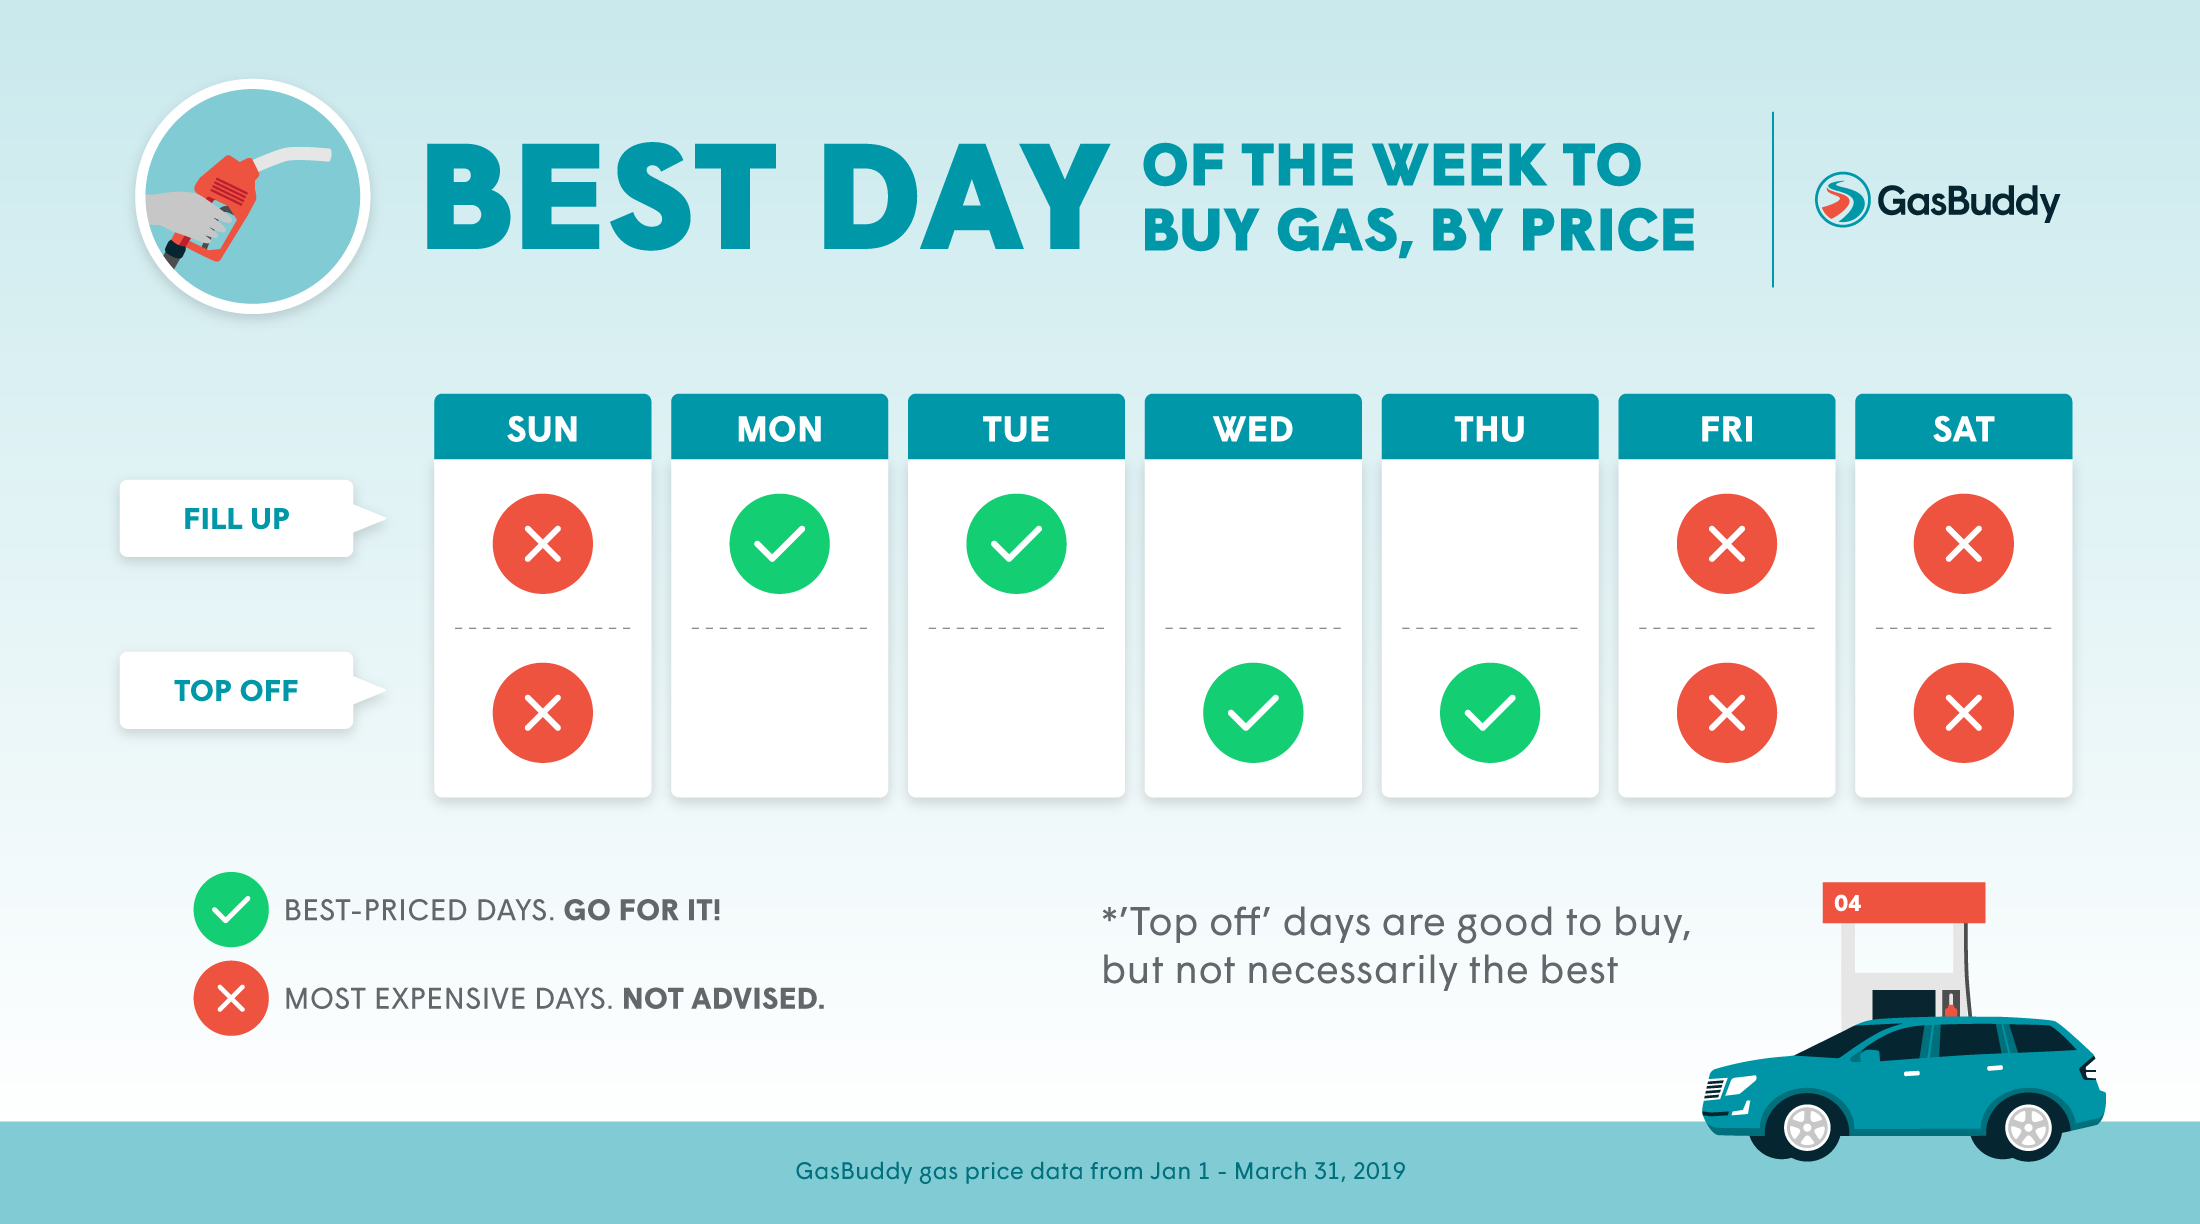 Best Day of the Week to Buy Gas in 2019